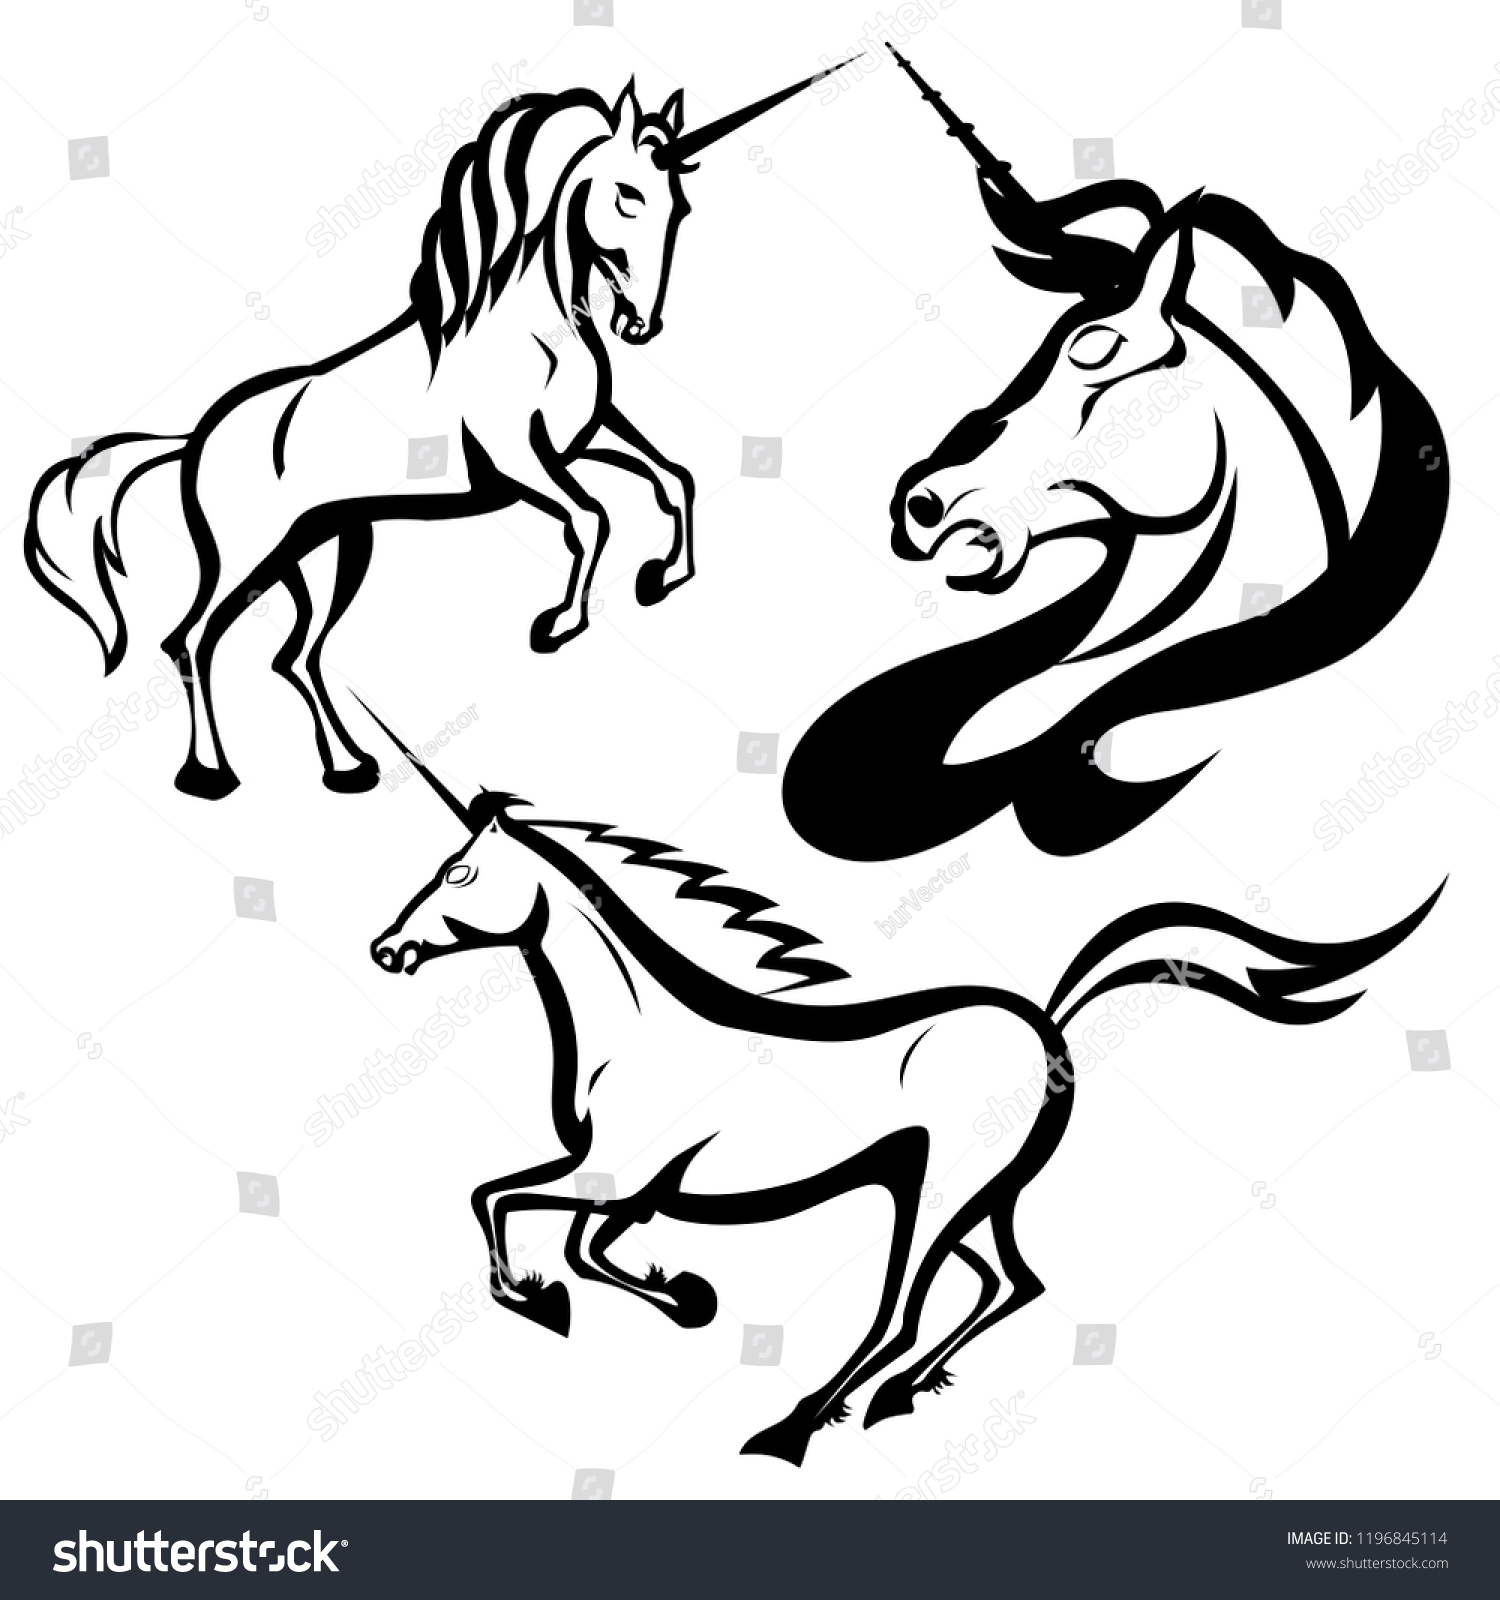 Set of drawings of unicorns in black and white vector illustration